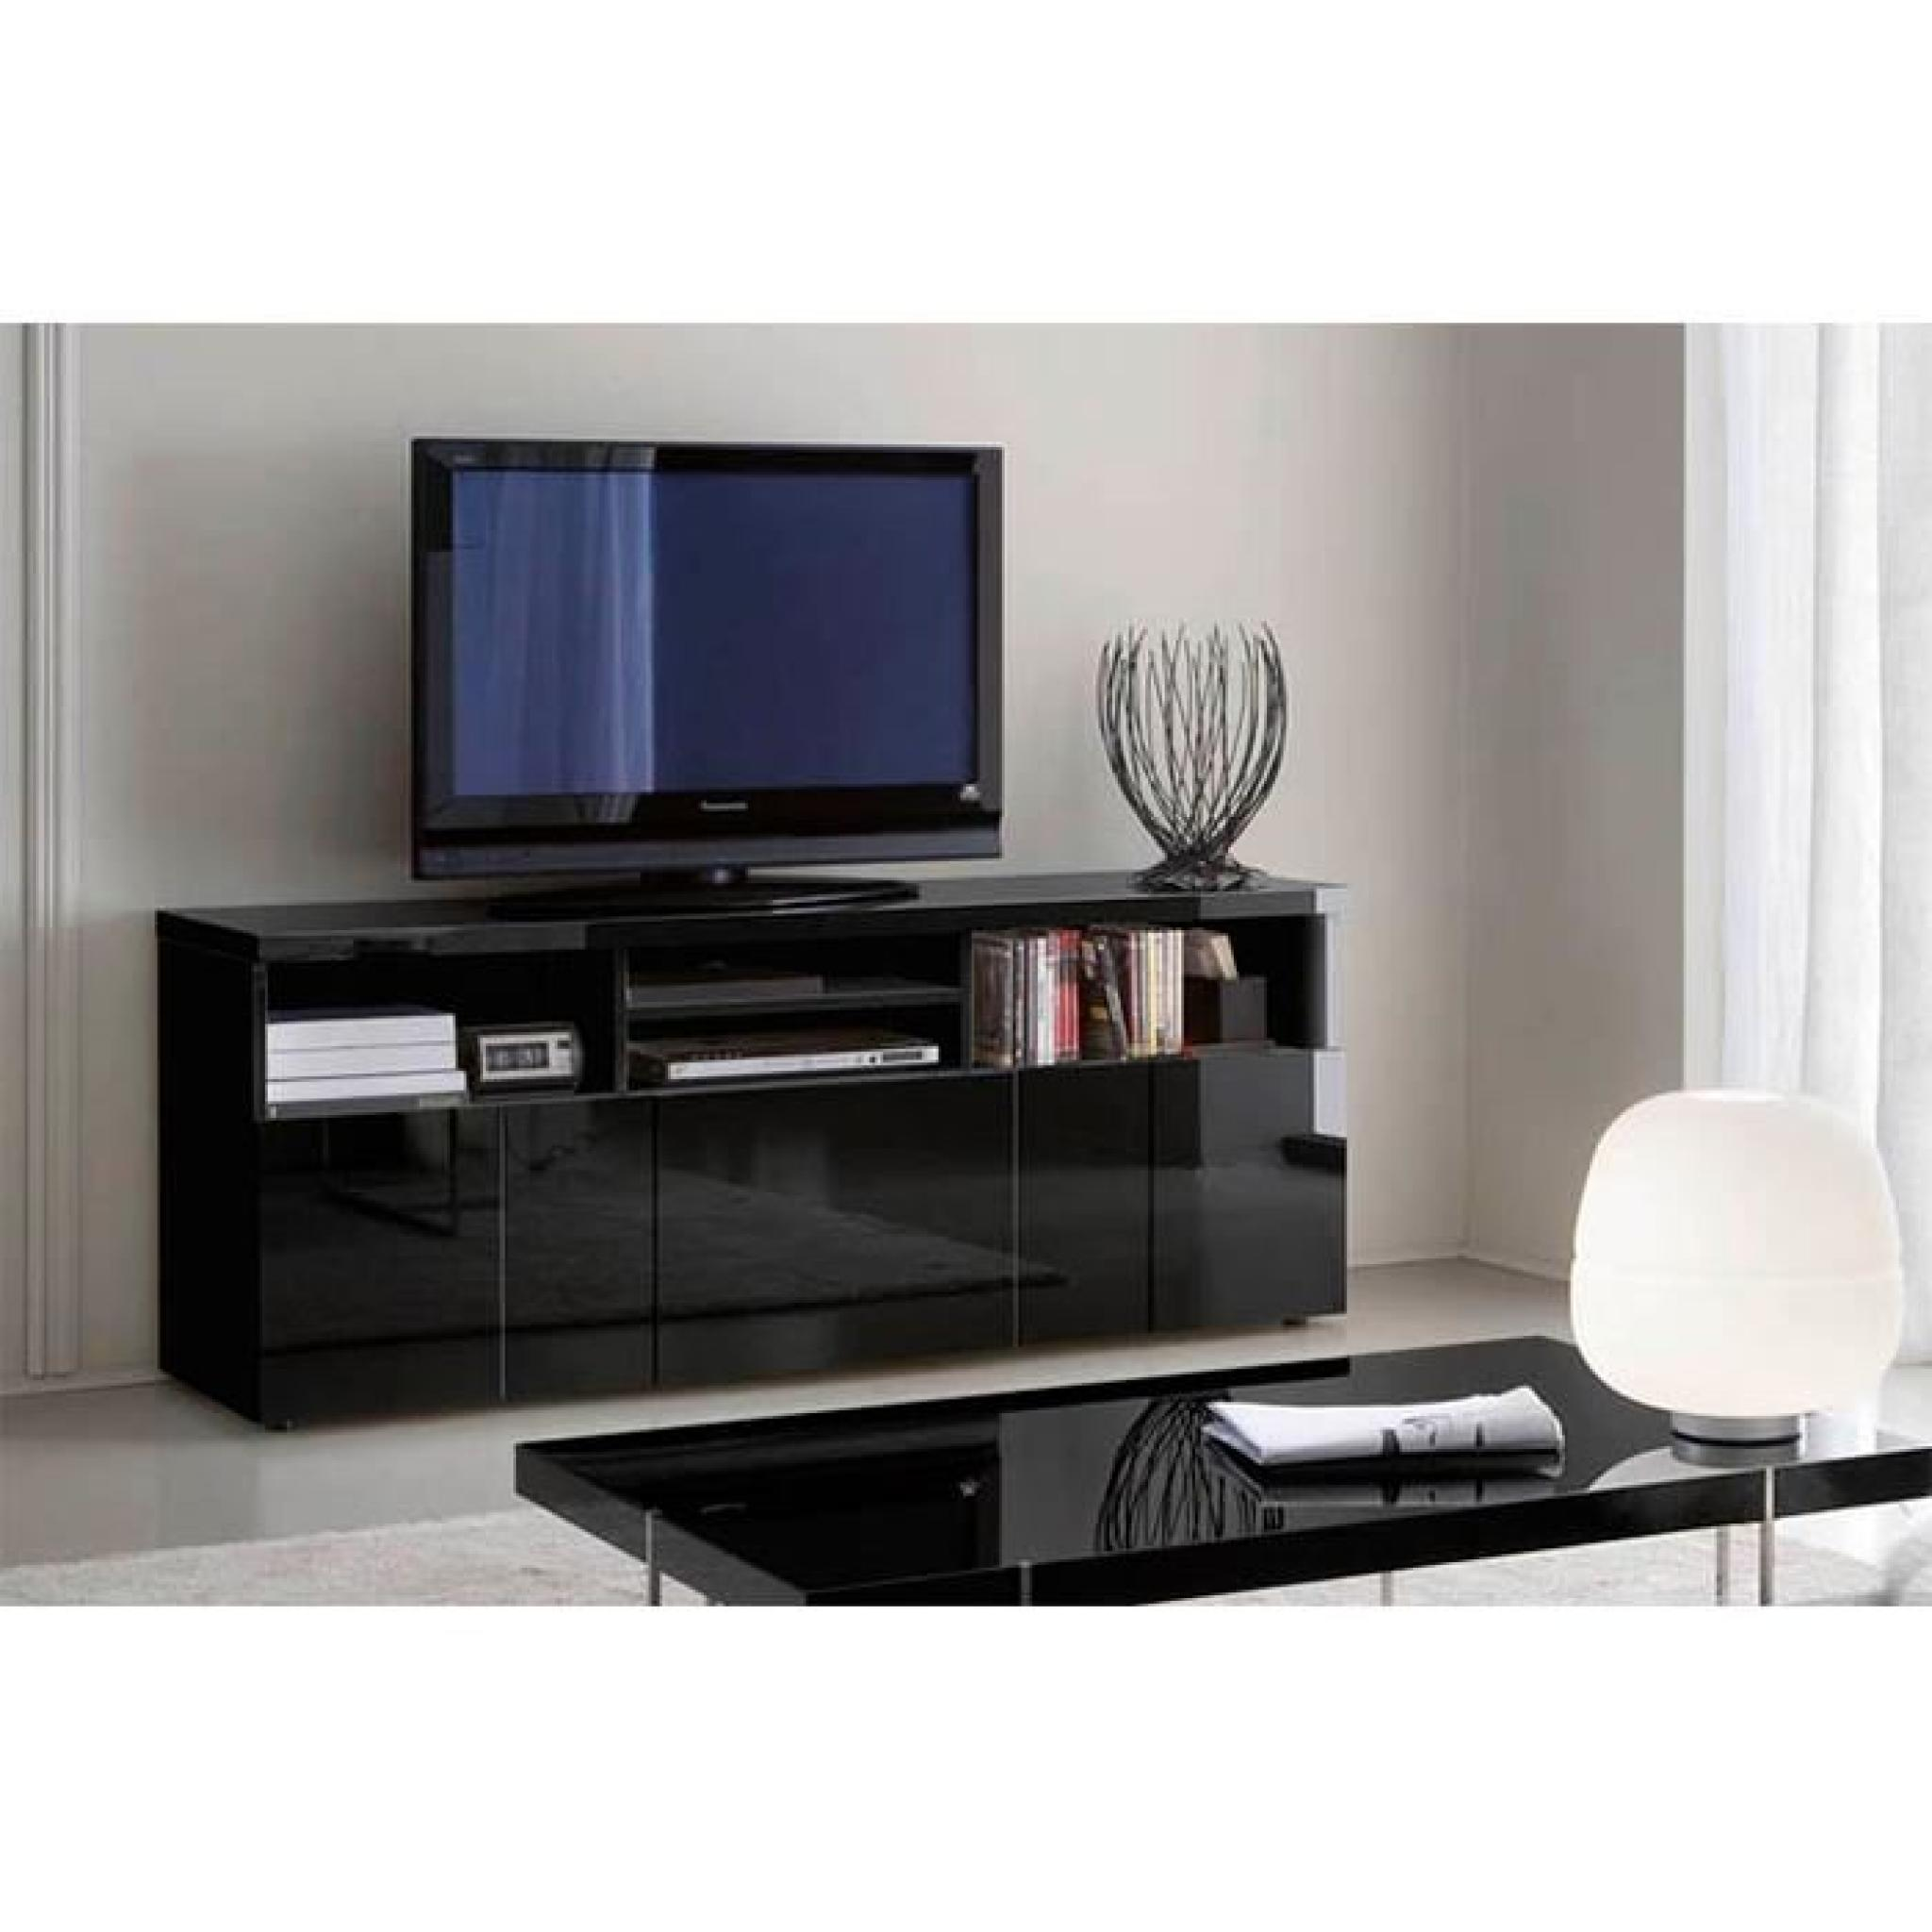 Meuble Tv Noir Buffet Meuble Tv Glossy Noir 3 Portes 4 Niches